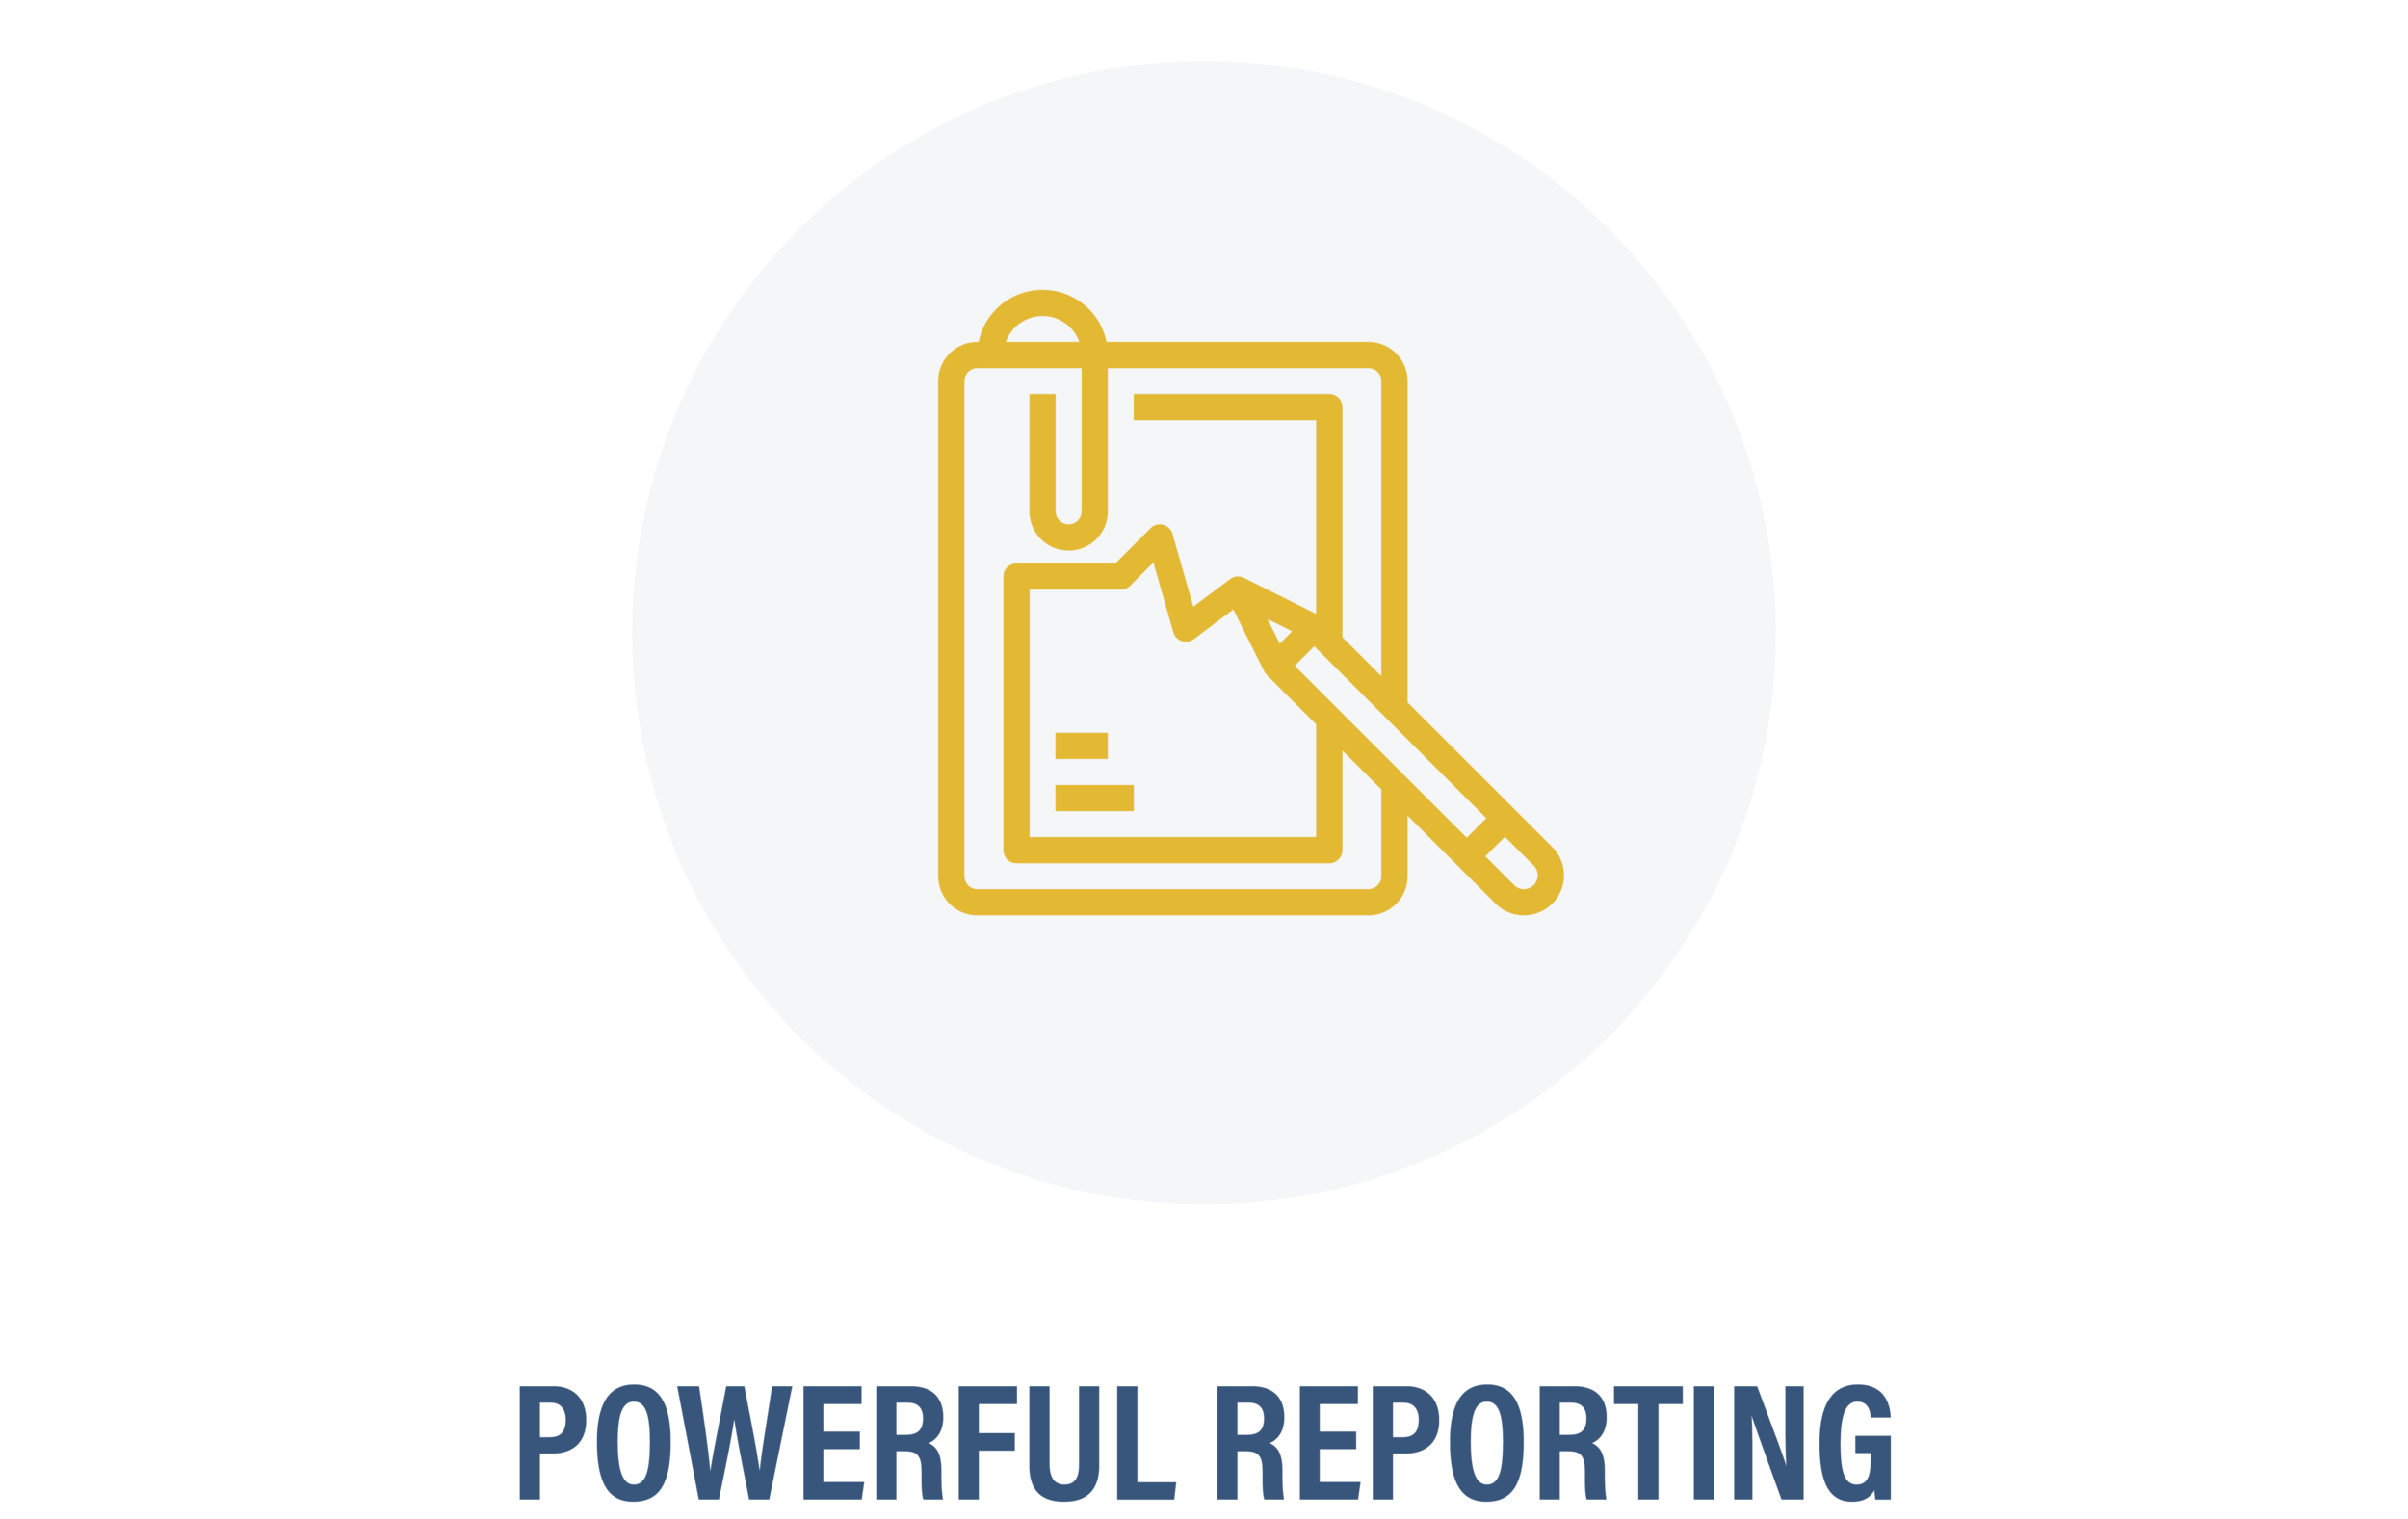 Track anonymous reports and investigations, review training completions and employee approvals, manage conflicts of interest on a routine basis. -